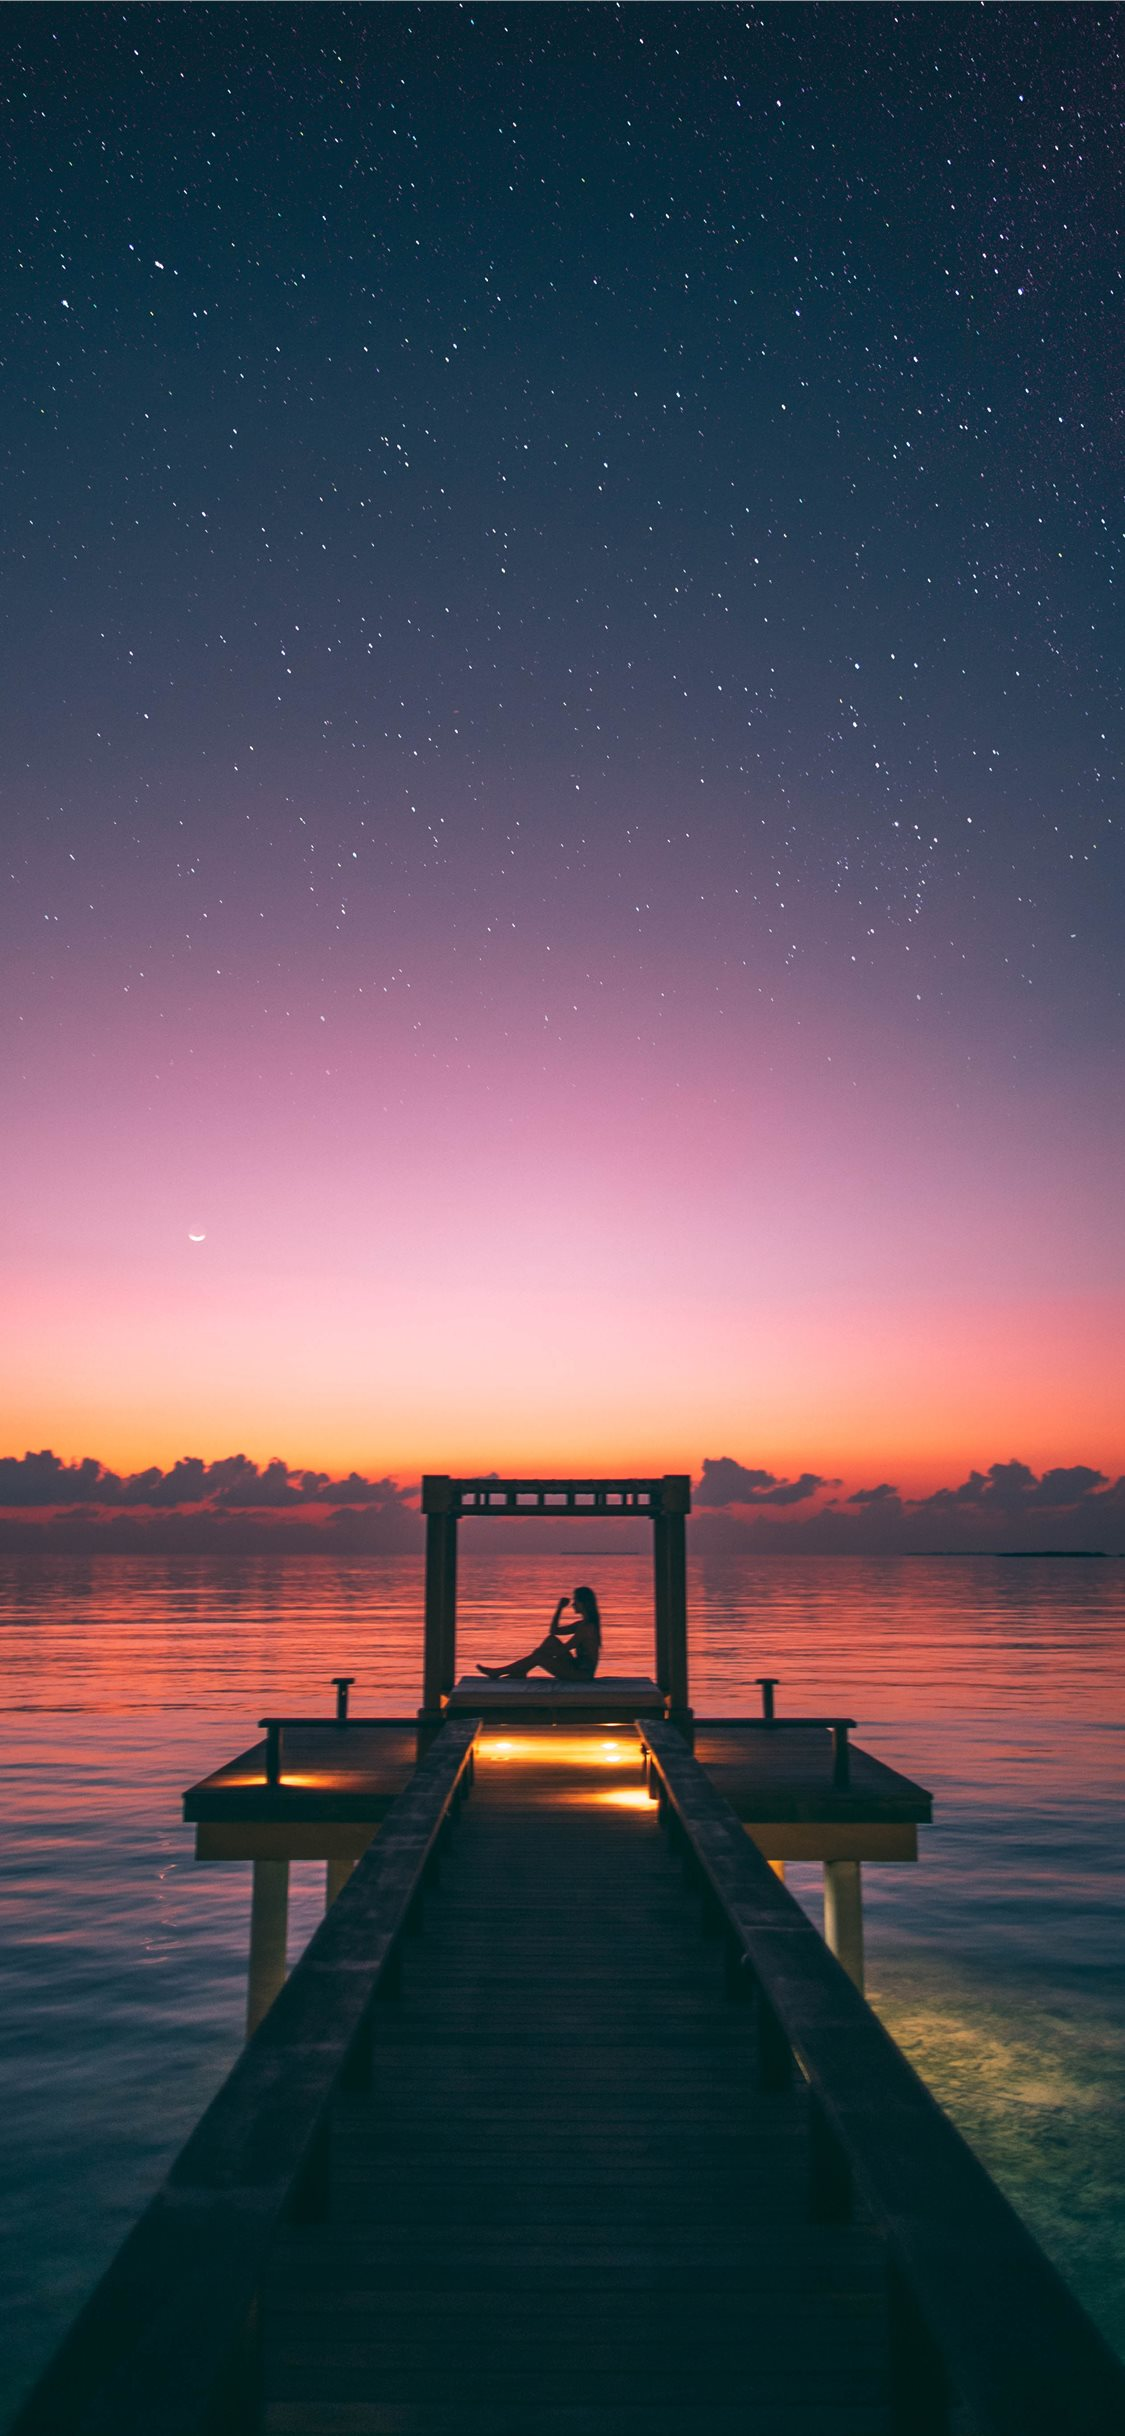 A Starry Night In The Maldives A Surreal Moment Iphone X